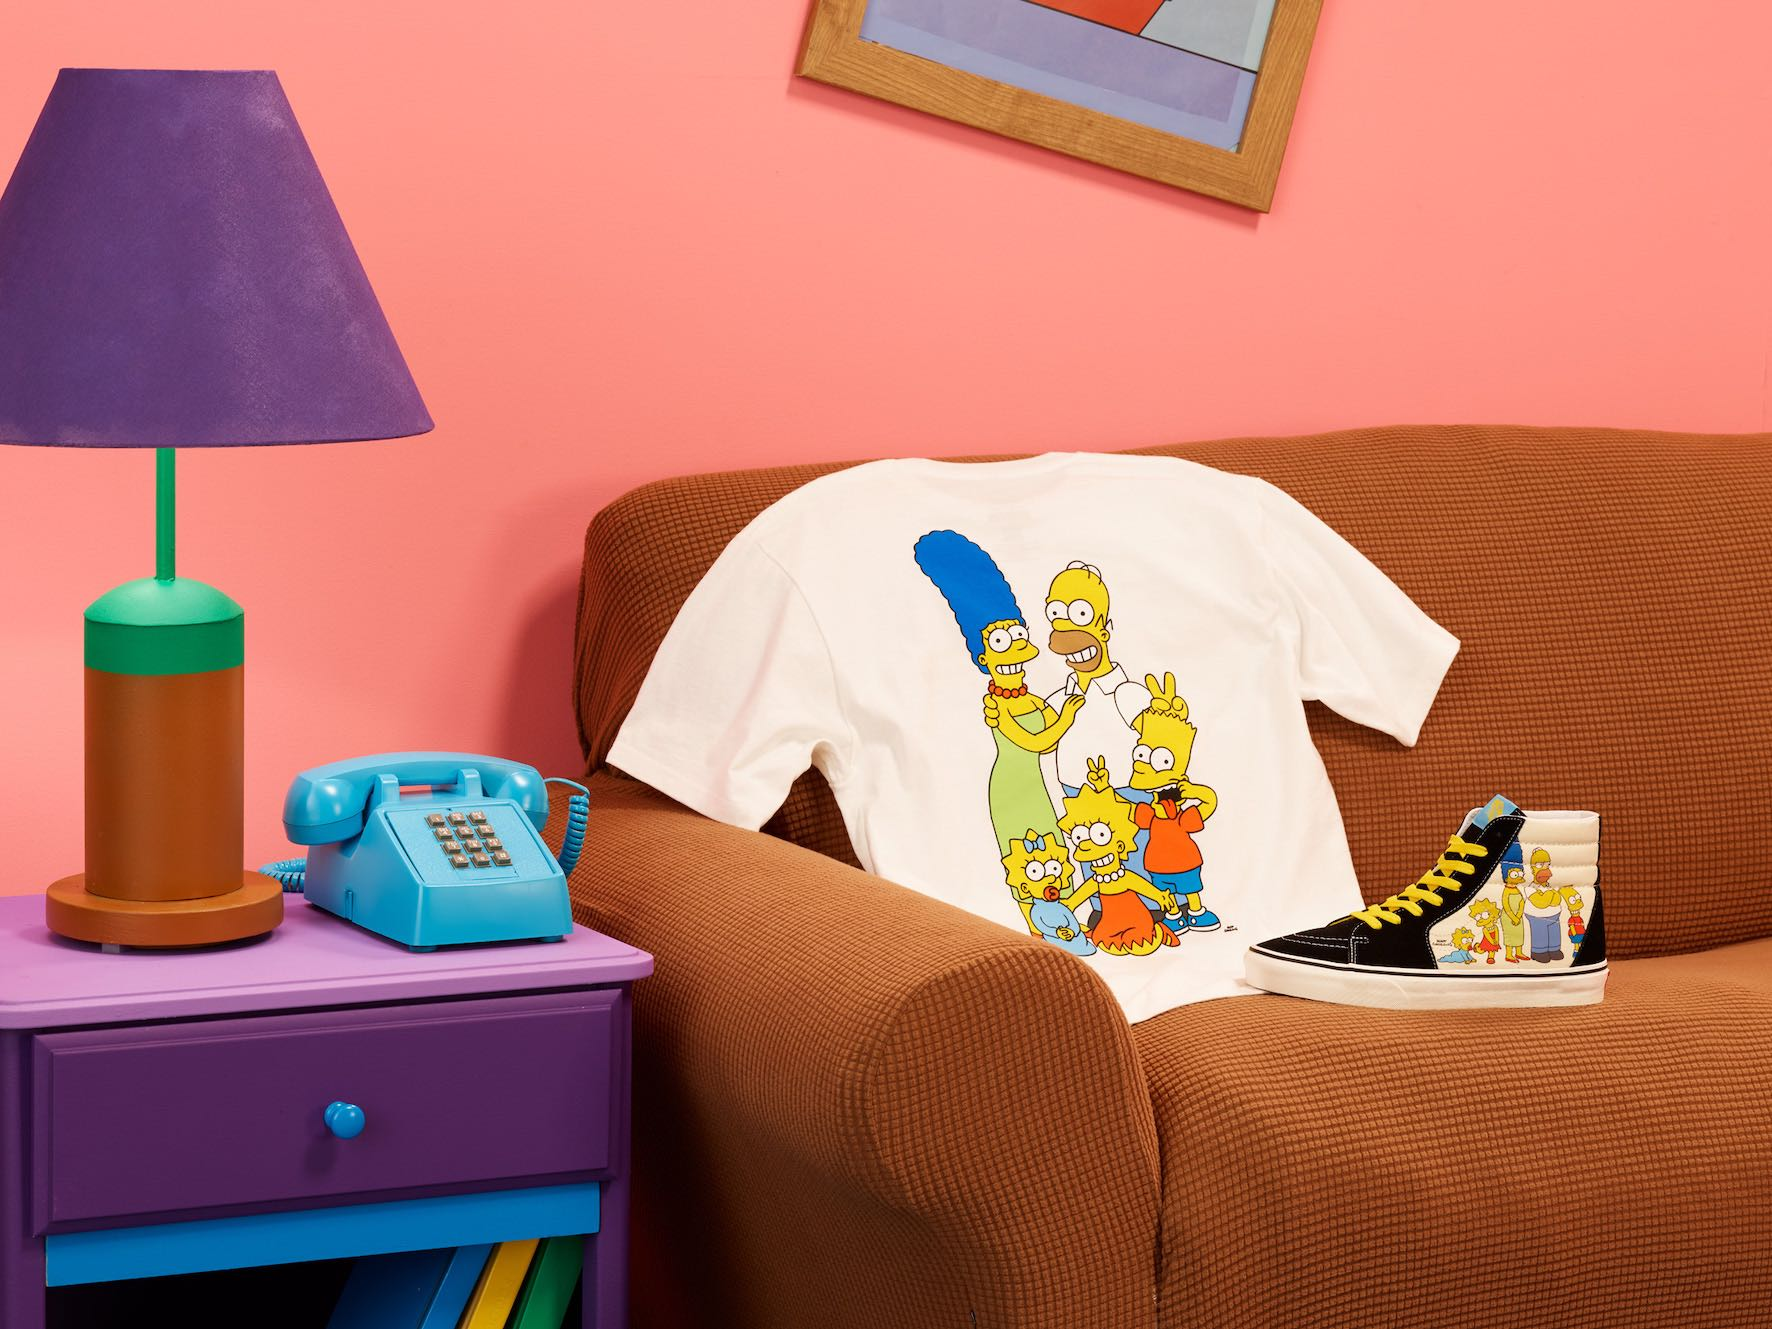 The Vans x Simpsons collection of footwear, apparel and accessories celebrates iconic moments from the historic series.